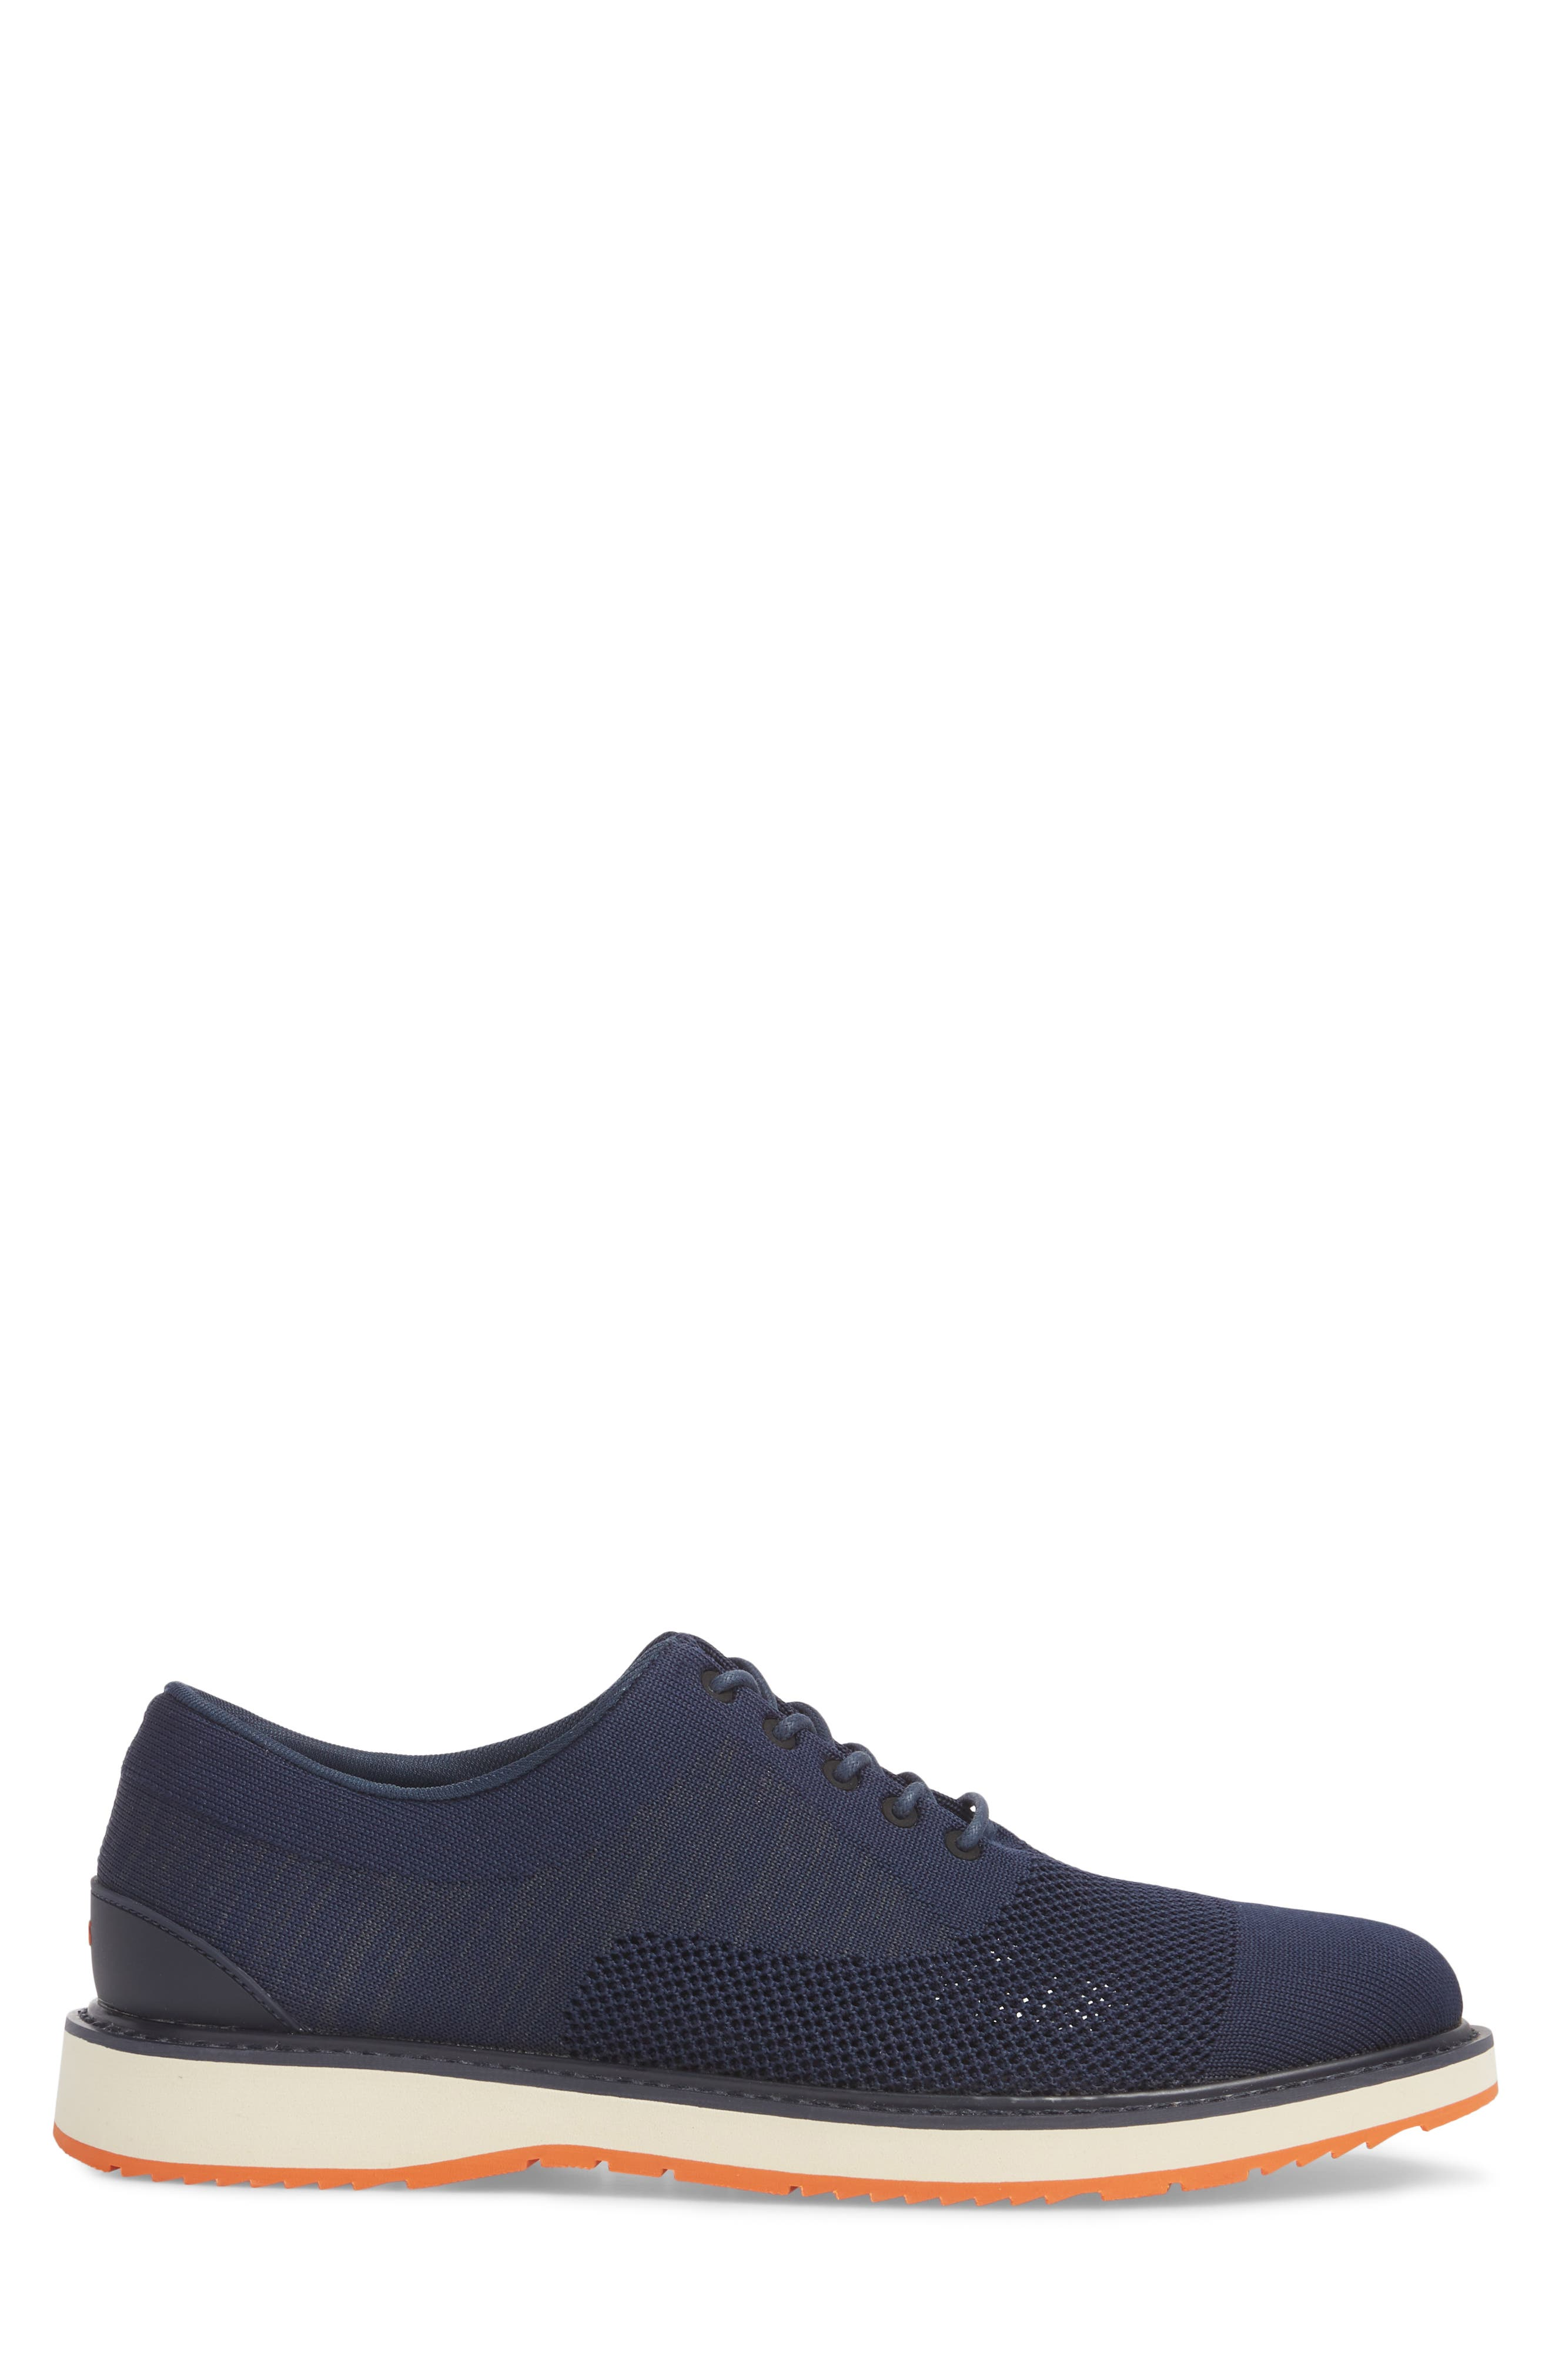 Alternate Image 3  - Swims Barry Knit Oxford (Men)